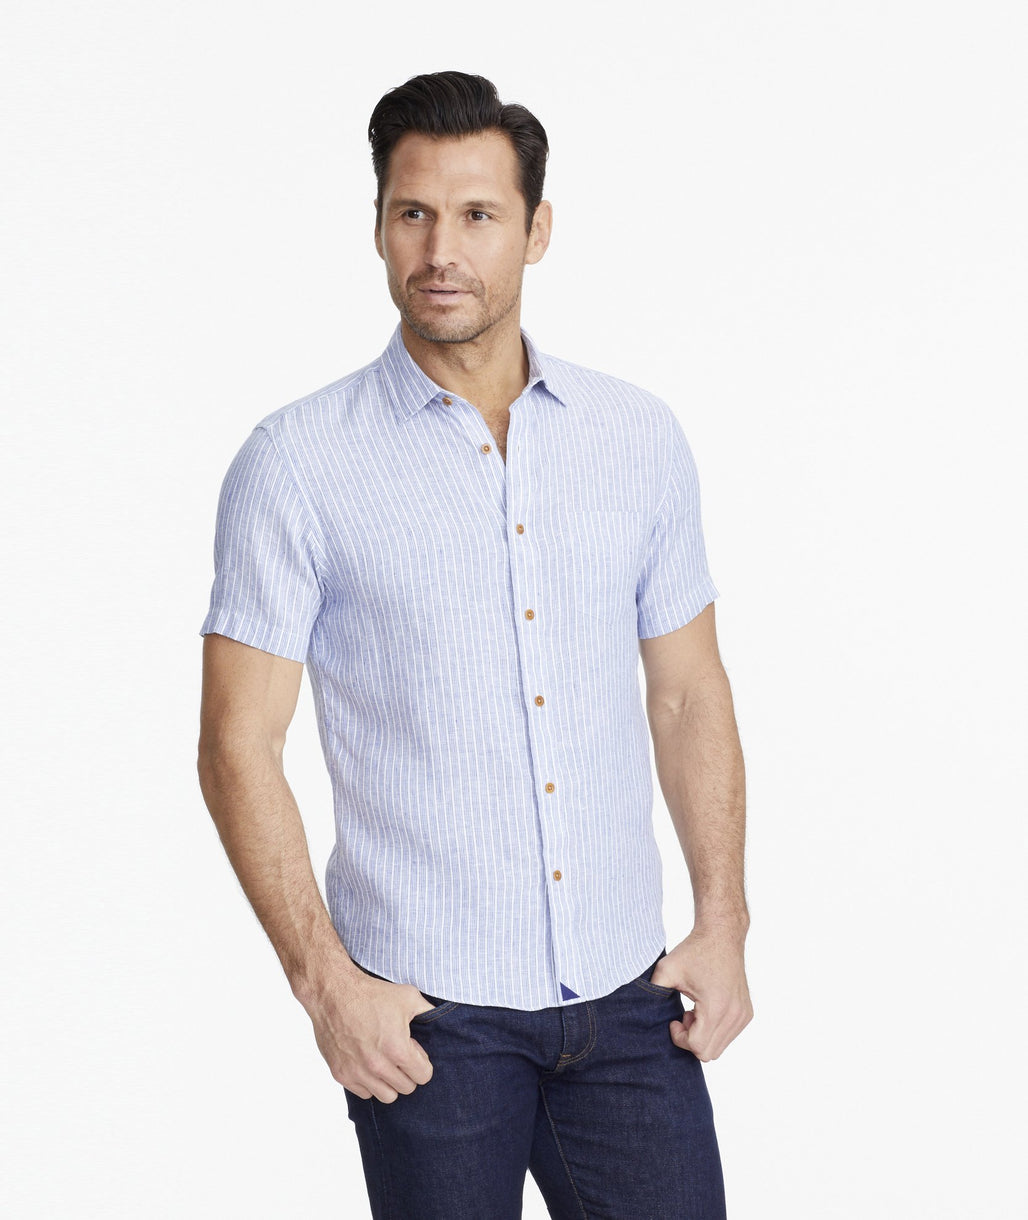 Model wearing a Blue Wrinkle-Resistant Linen Short-Sleeve Westrey Shirt